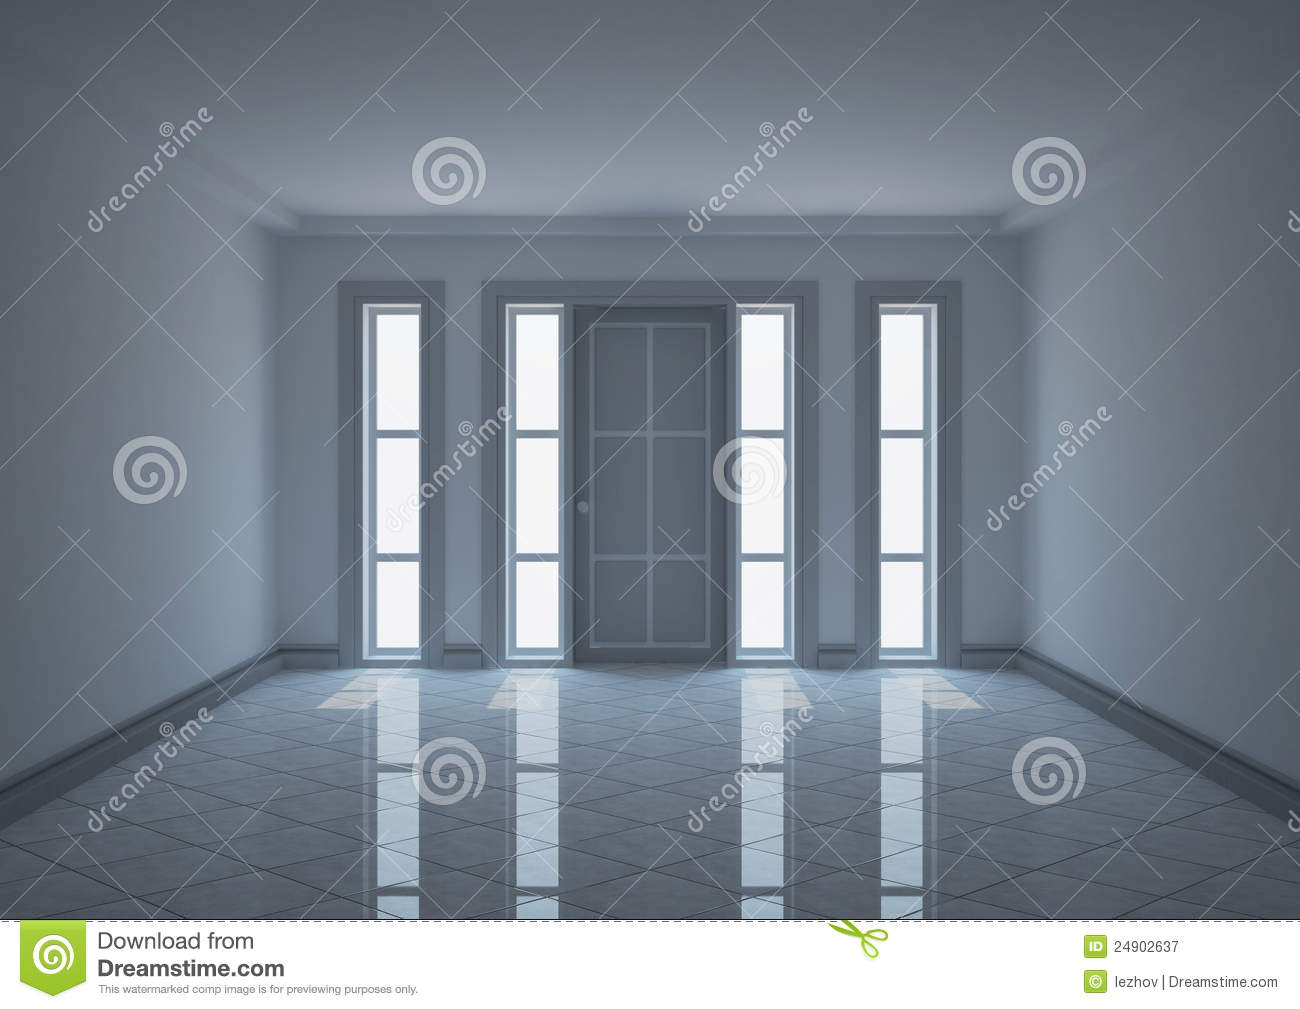 Empty Entrance Hall With Narrow Windows Stock Illustration